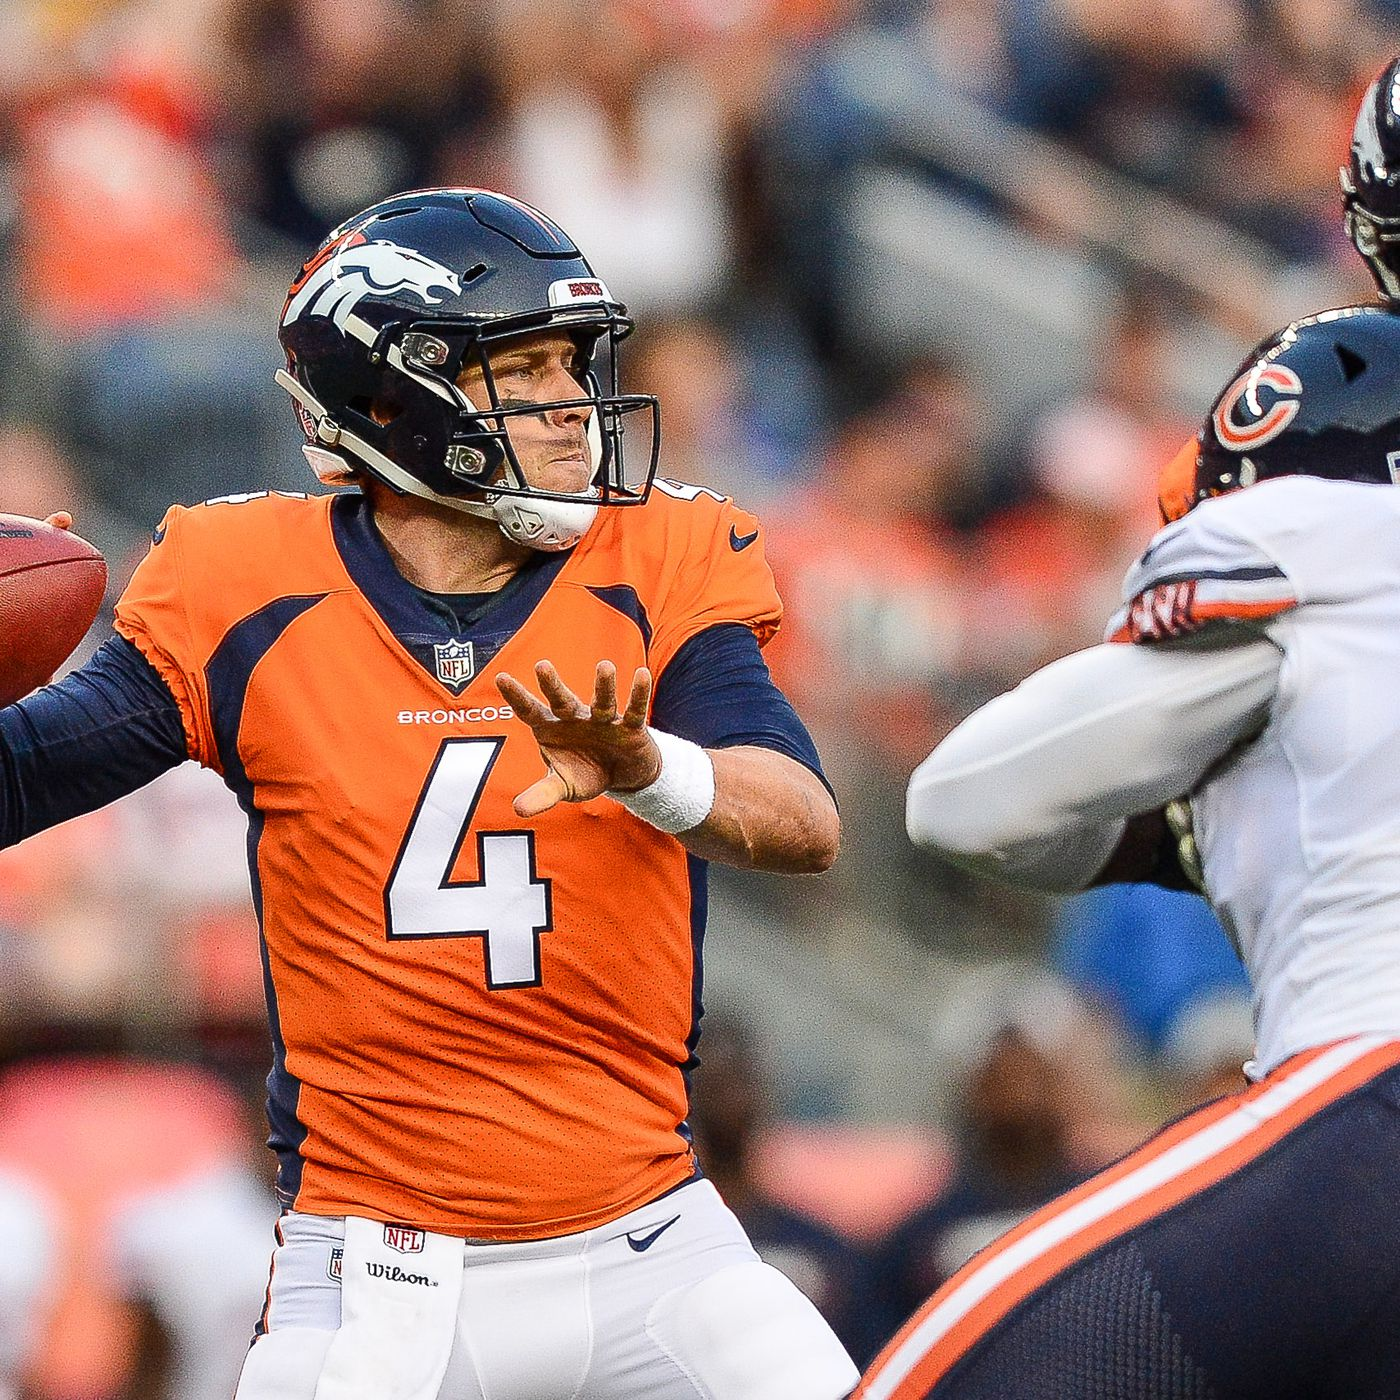 ac620fad Five things we learned from the Broncos 24-23 defeat by the Bears ...